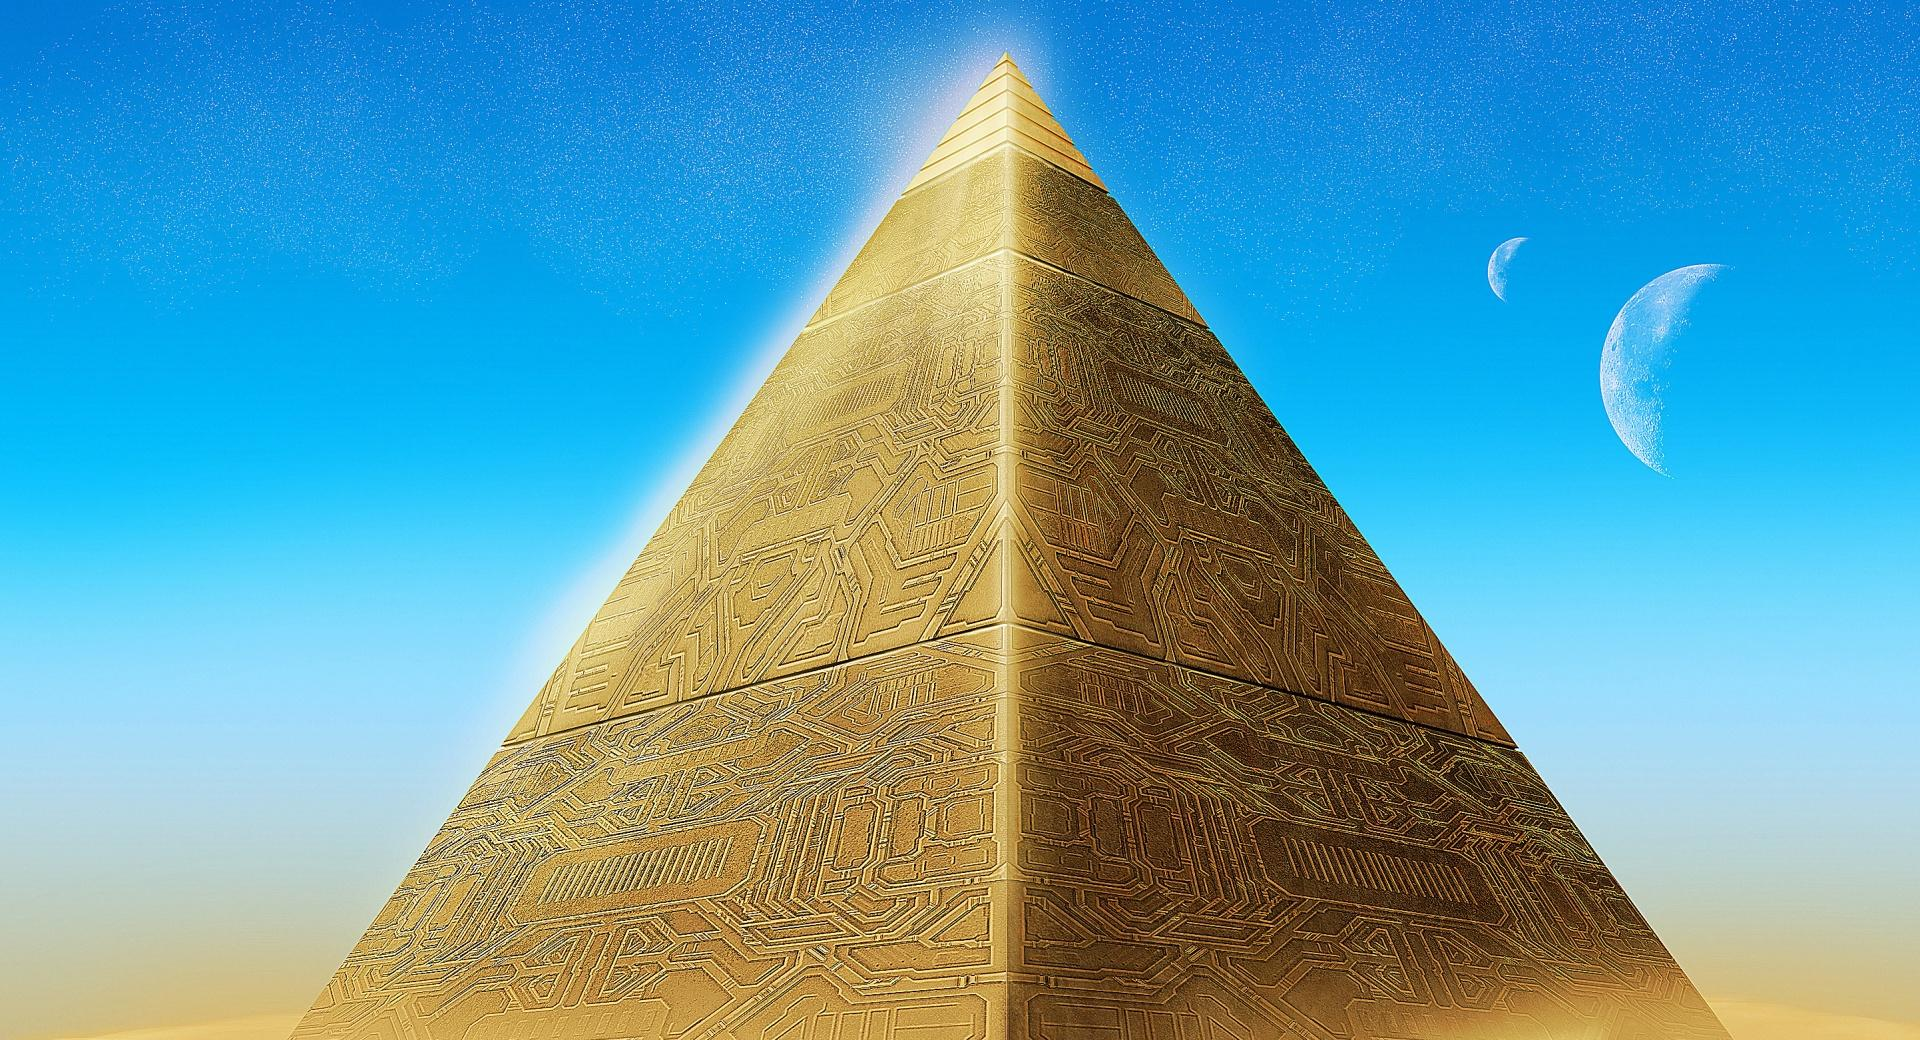 Gold Pyramid wallpapers HD quality